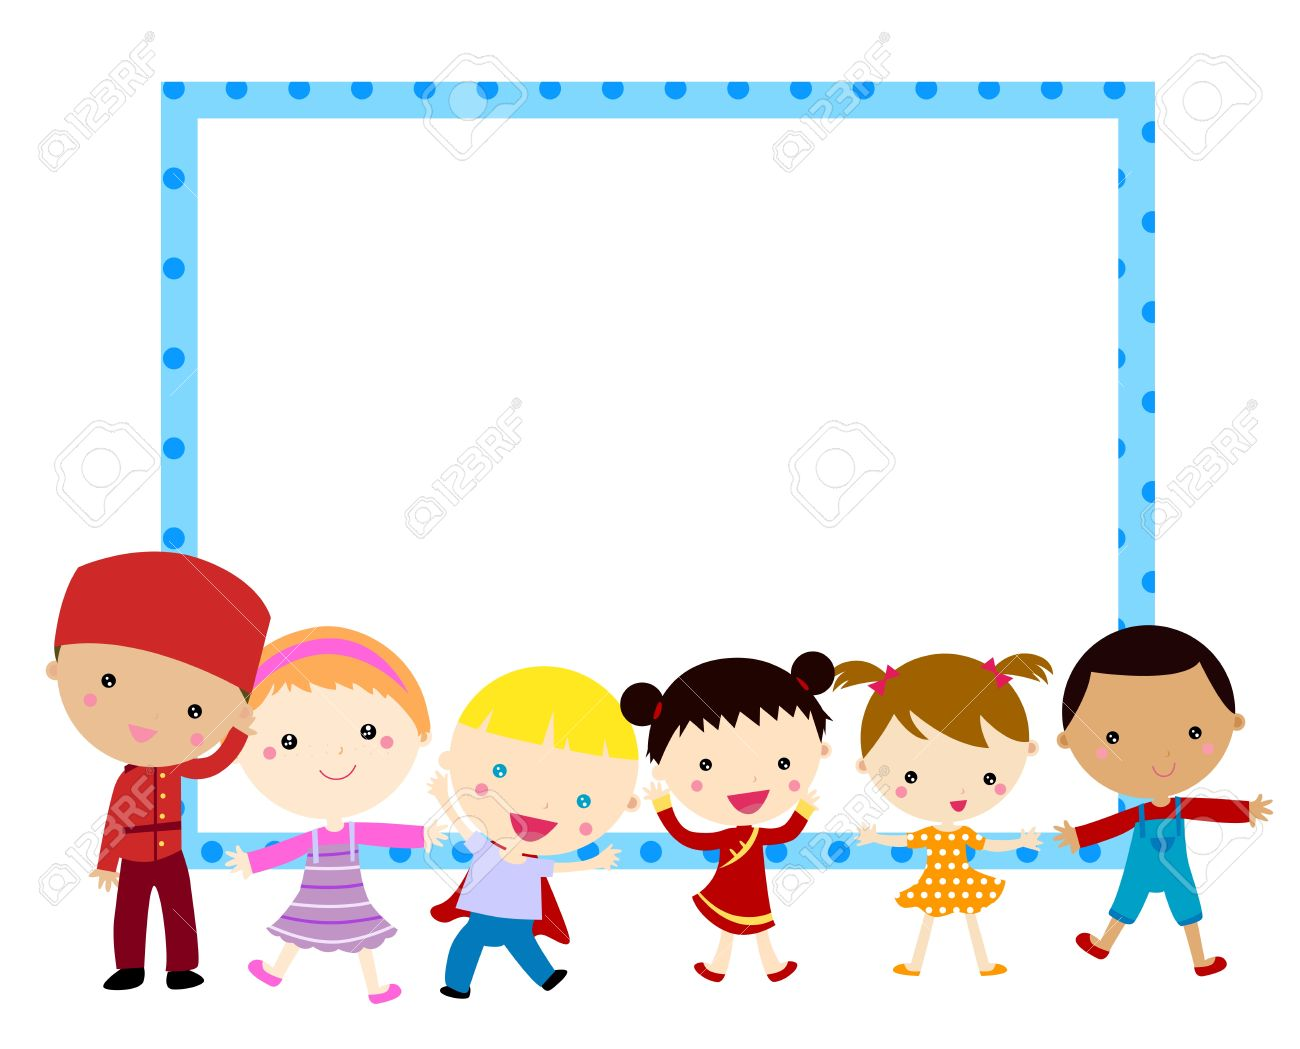 Cute Cartoon Kids Frame Royalty Free Cliparts, Vectors, And Stock ...